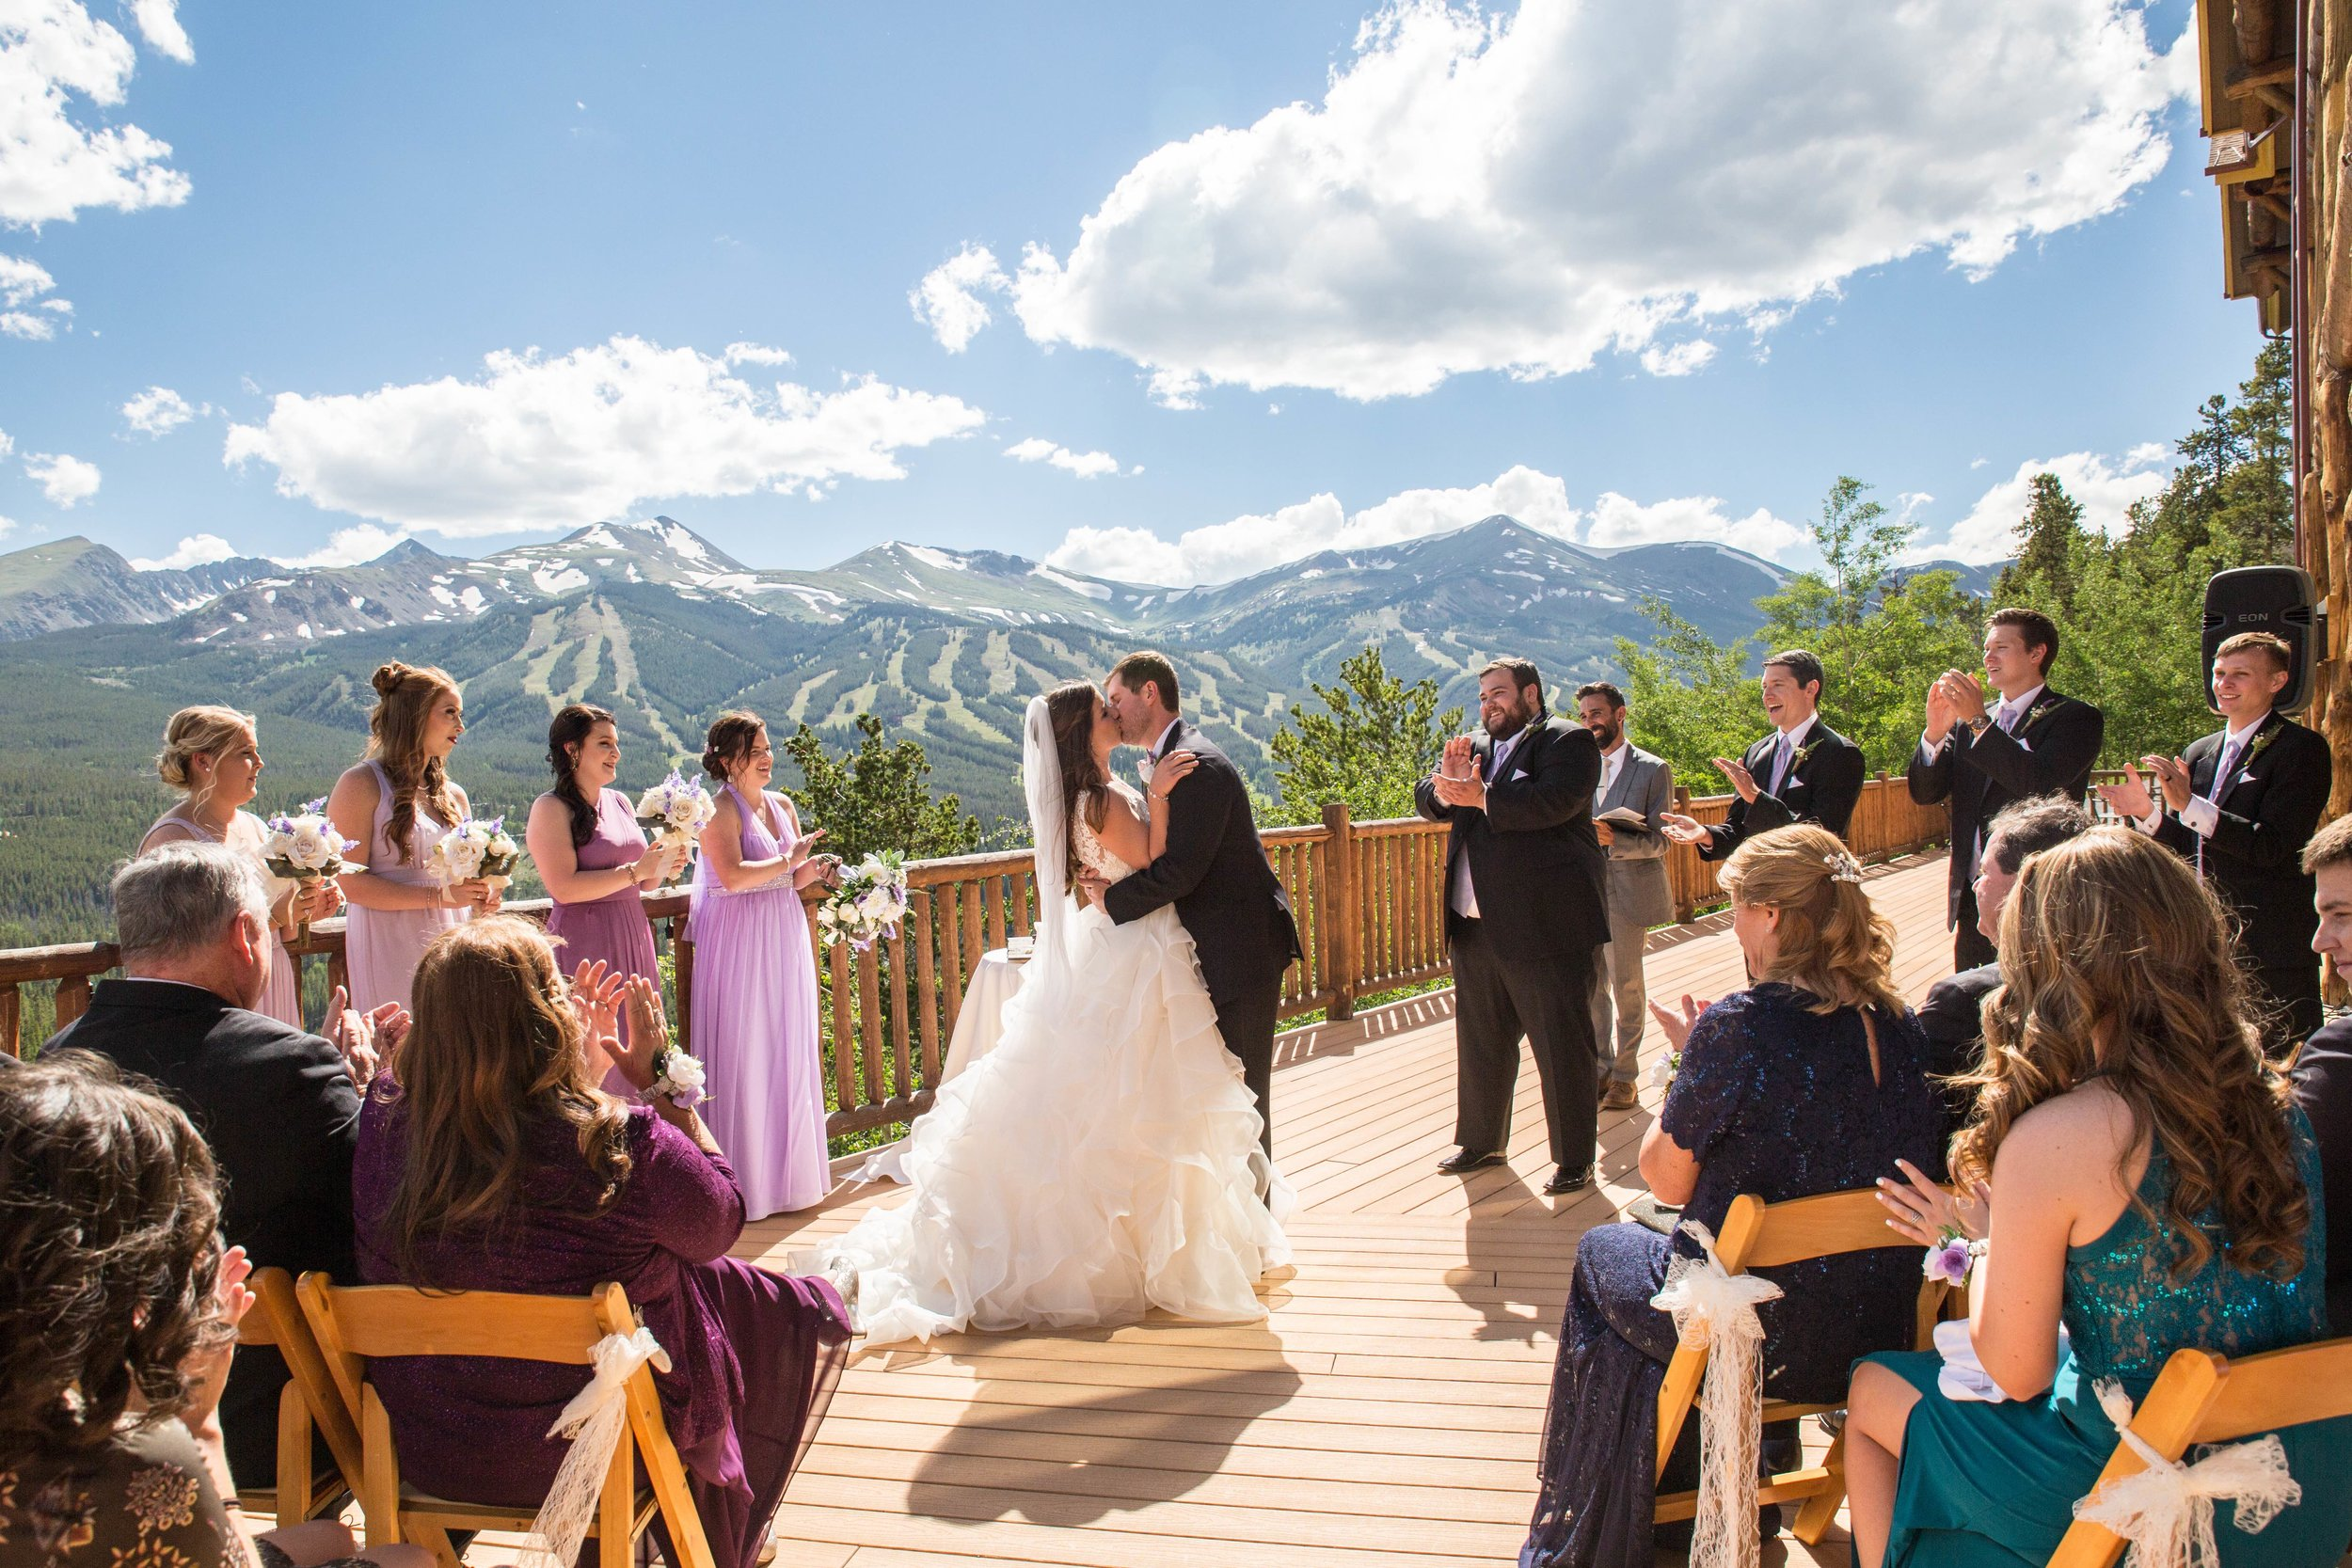 Outdoor Wedding Ceremony at The Lodge at Breckenridge